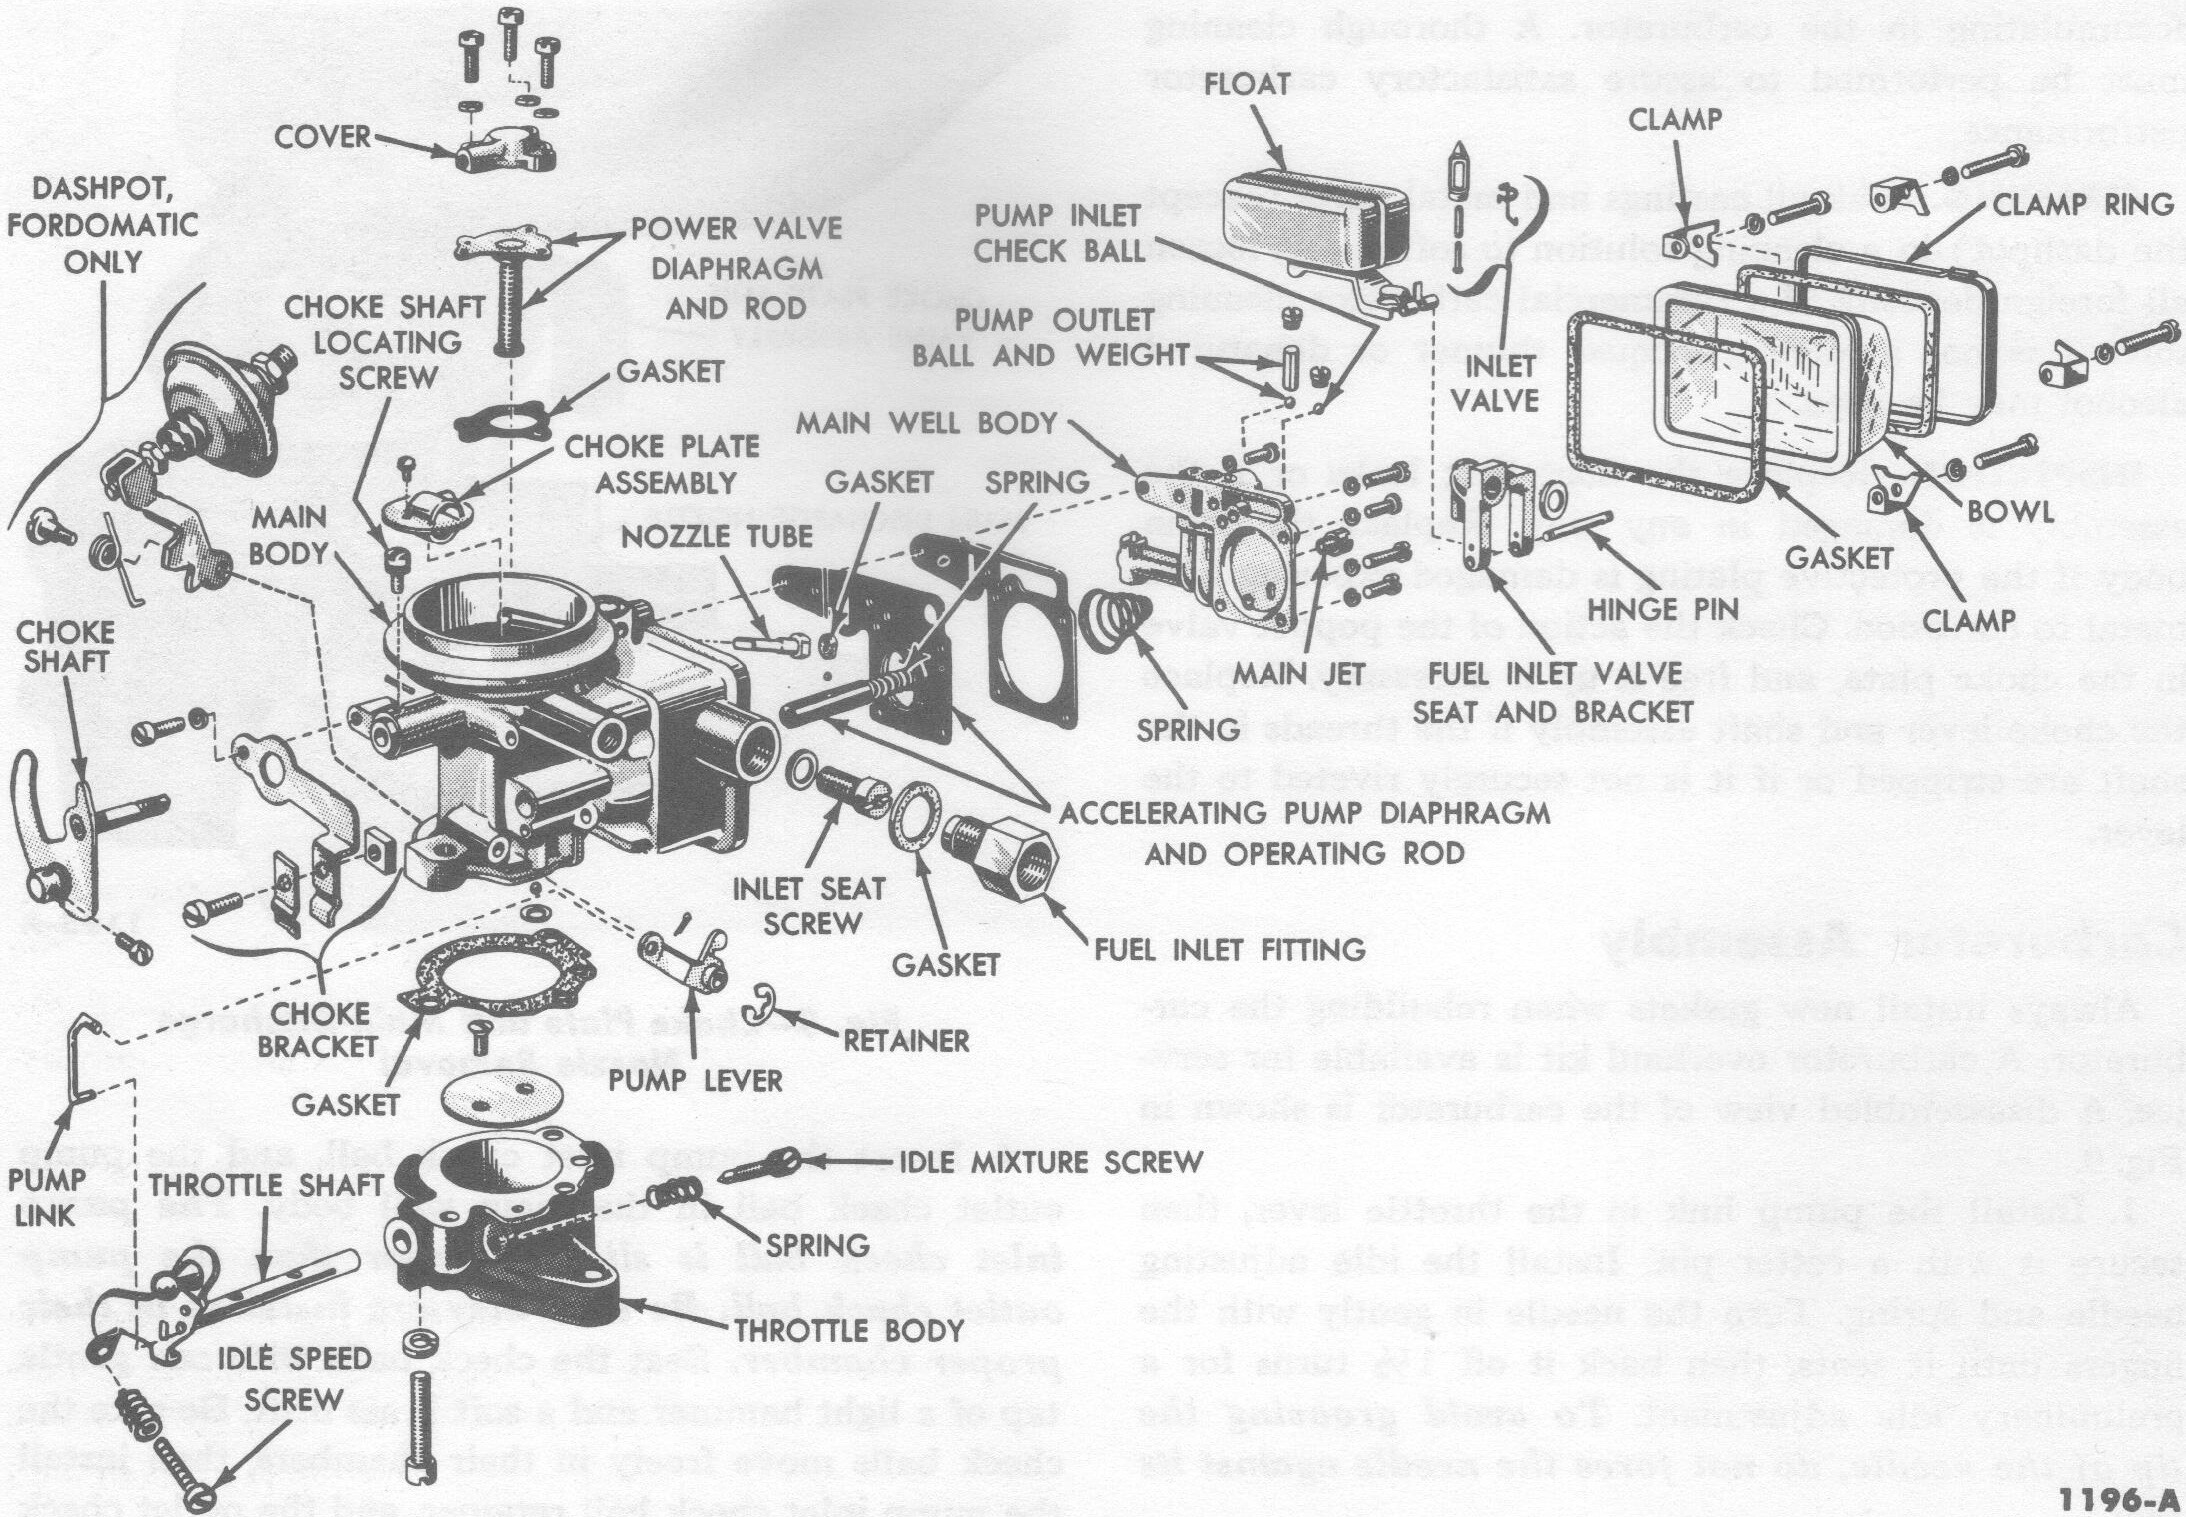 Holley Electric Choke Installation Instructions